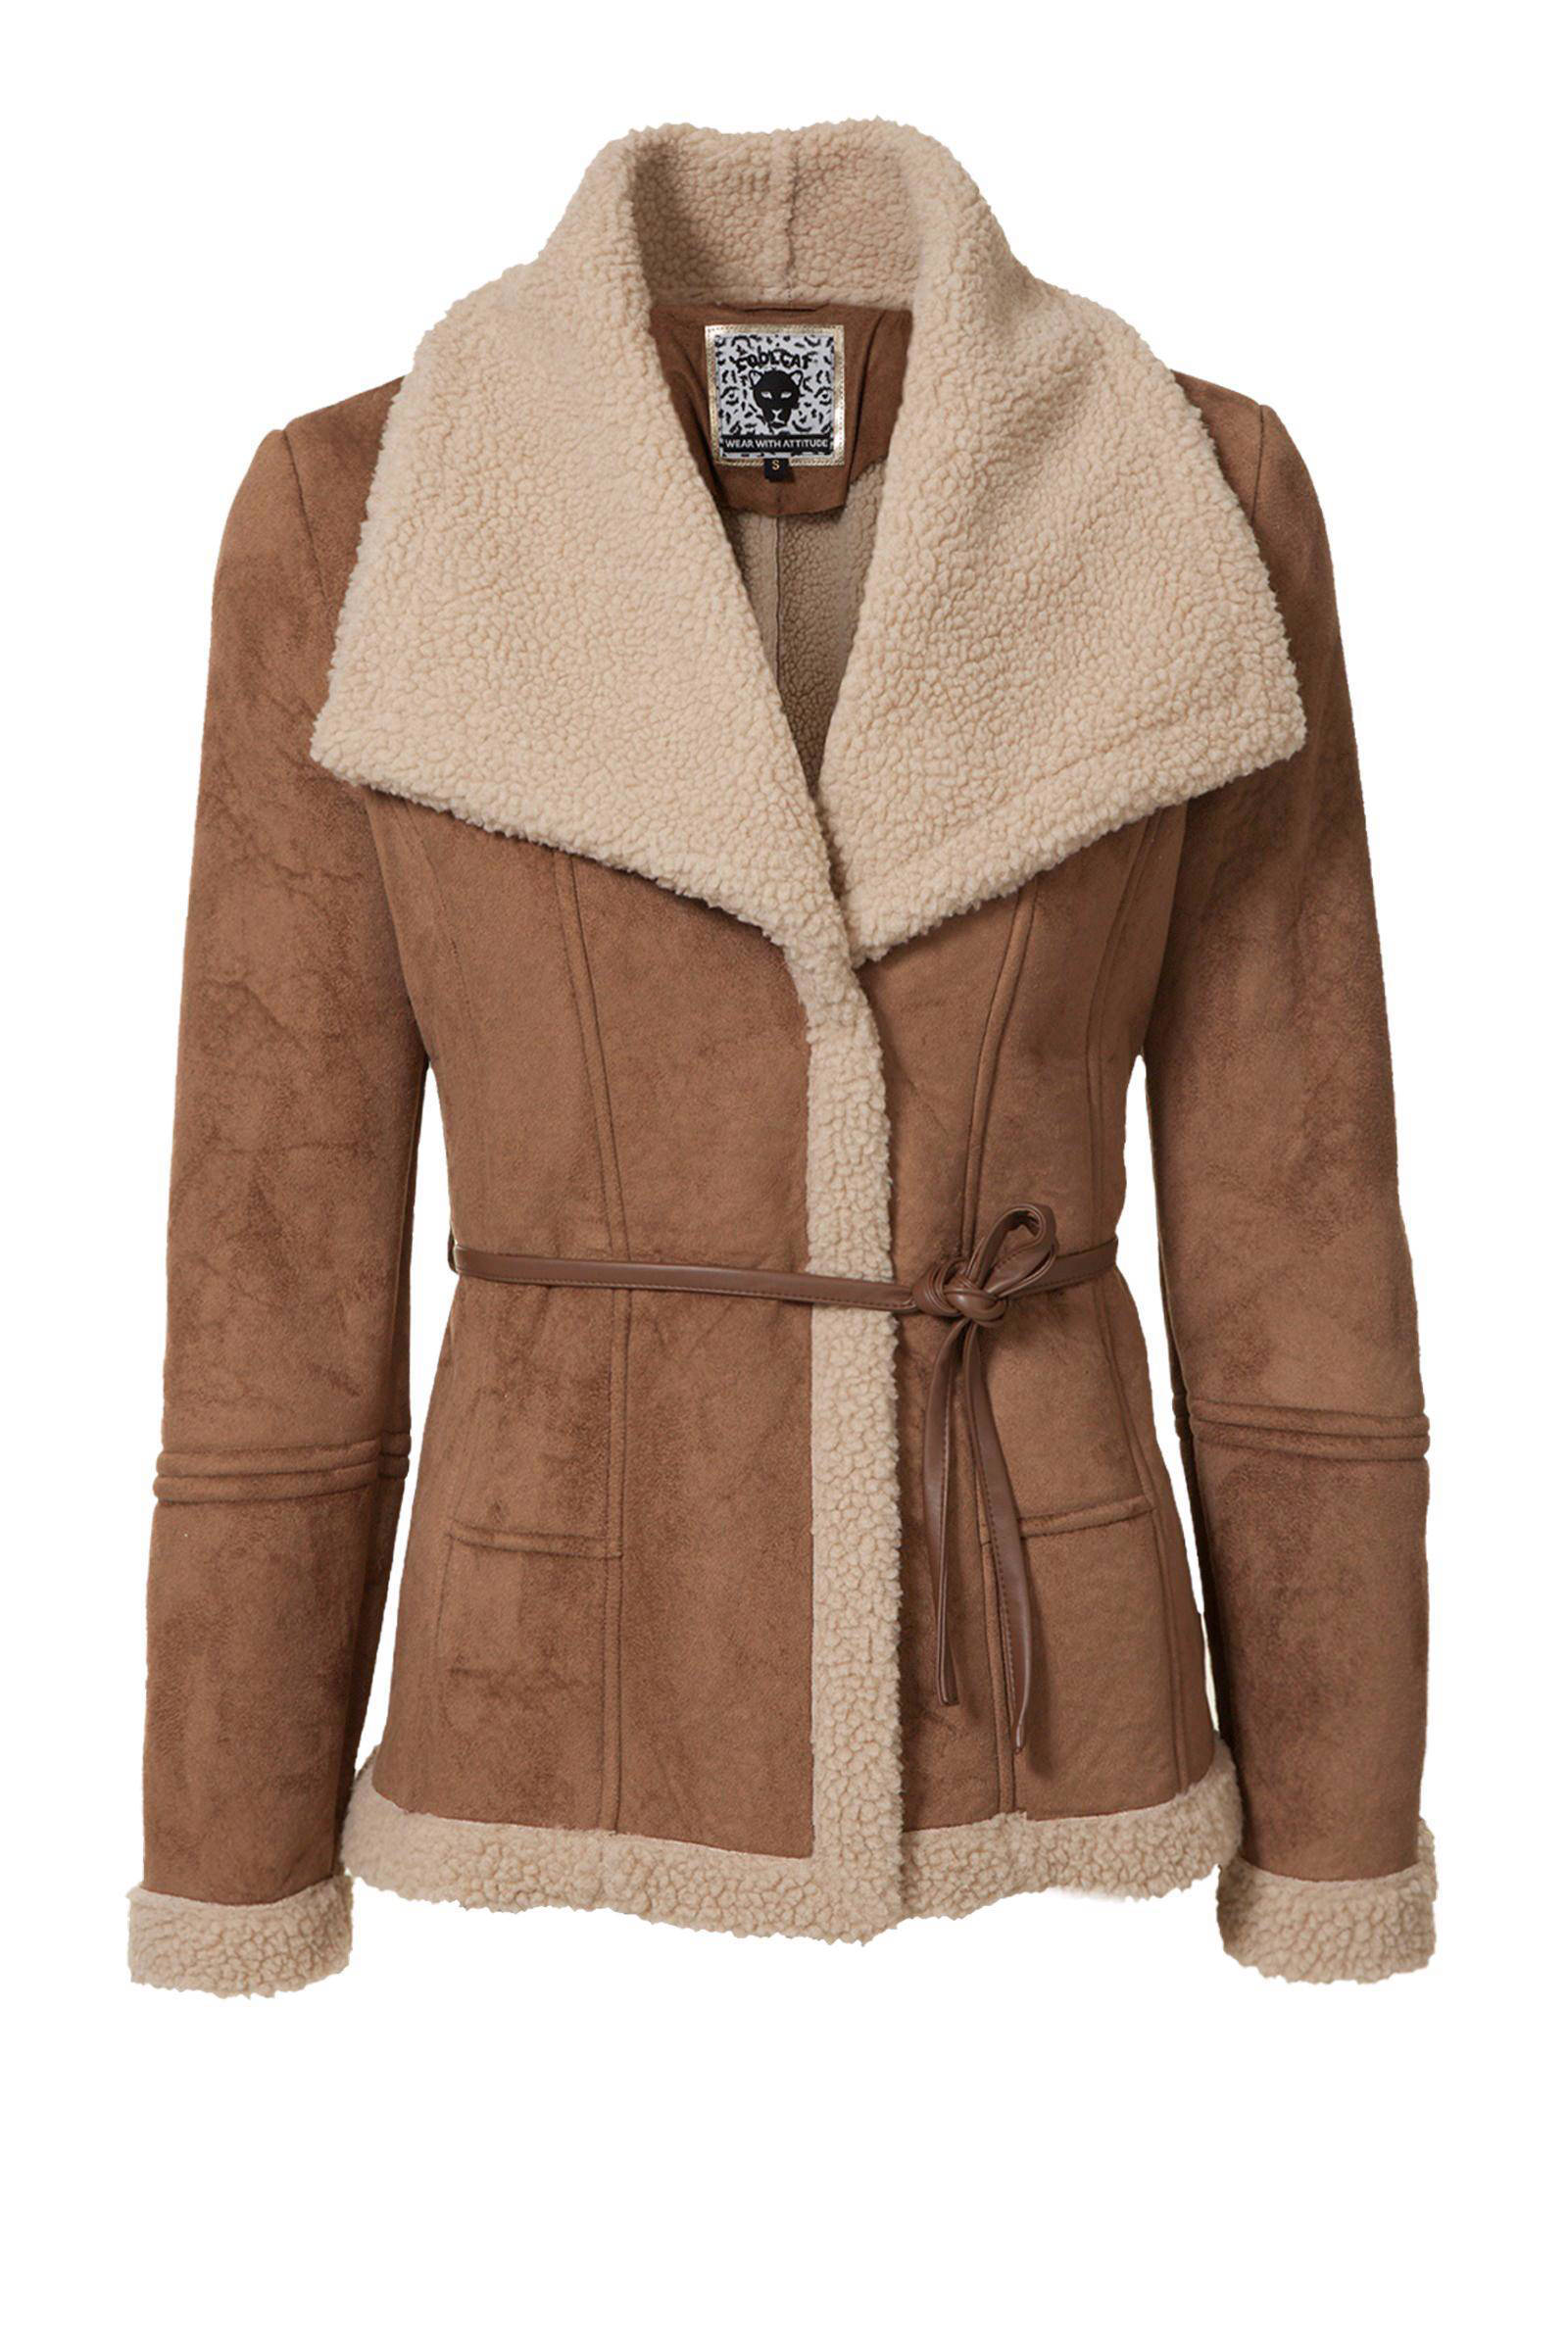 imitatie lammy coat dames